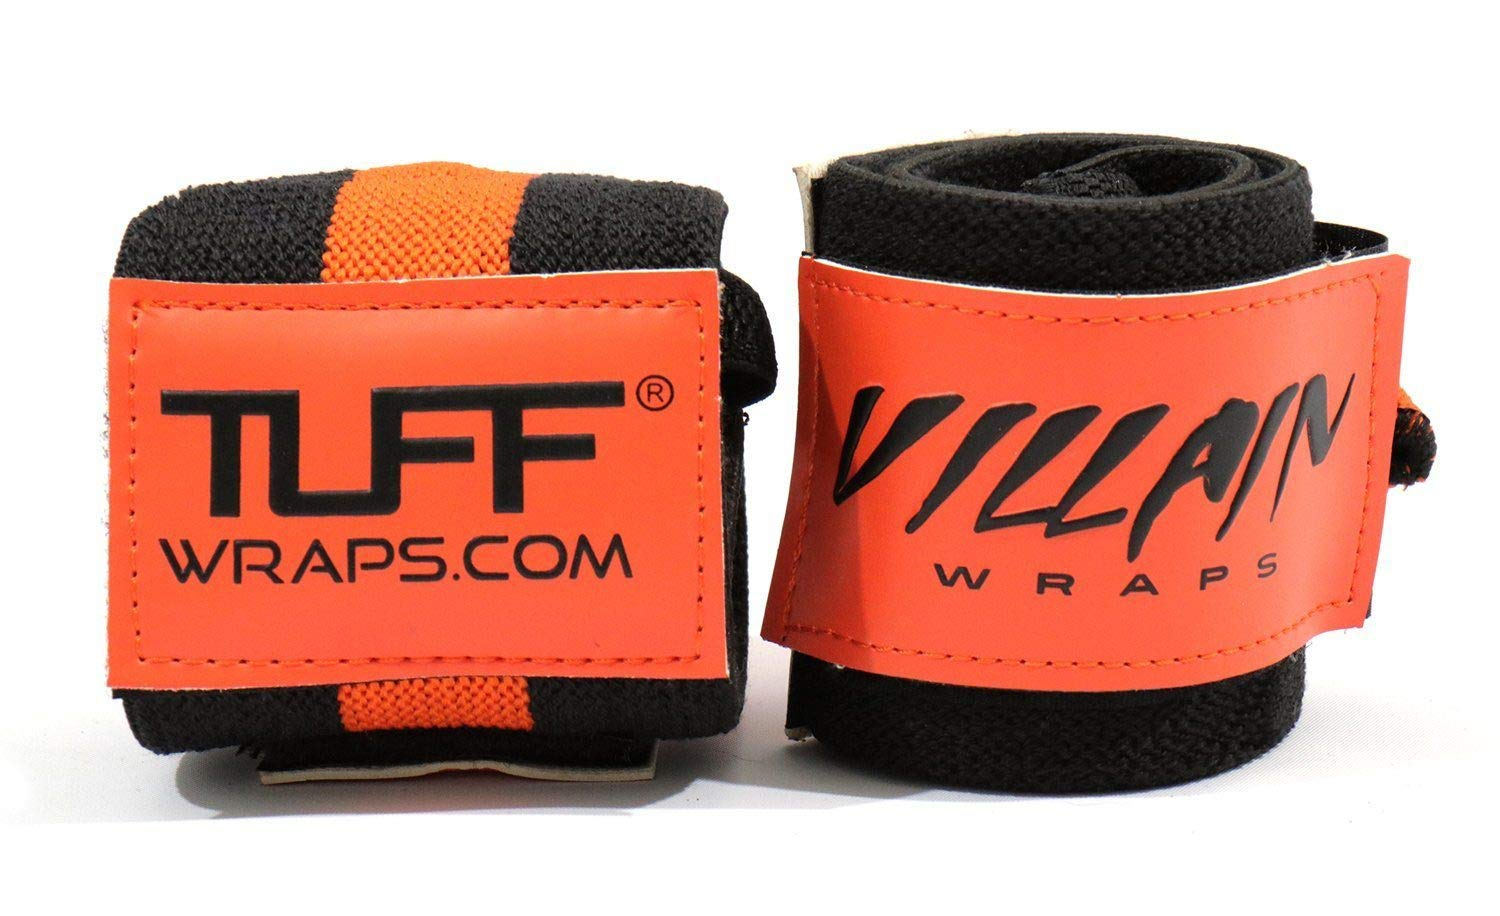 Villain Wrist Wraps 16'' for Powerlifting, Weightlifting, Strongman Training, Crossfit - Never Fuss with Thumb Loops Again - 30 Day Guarantee - (Black/Orangel, 16 Inches)